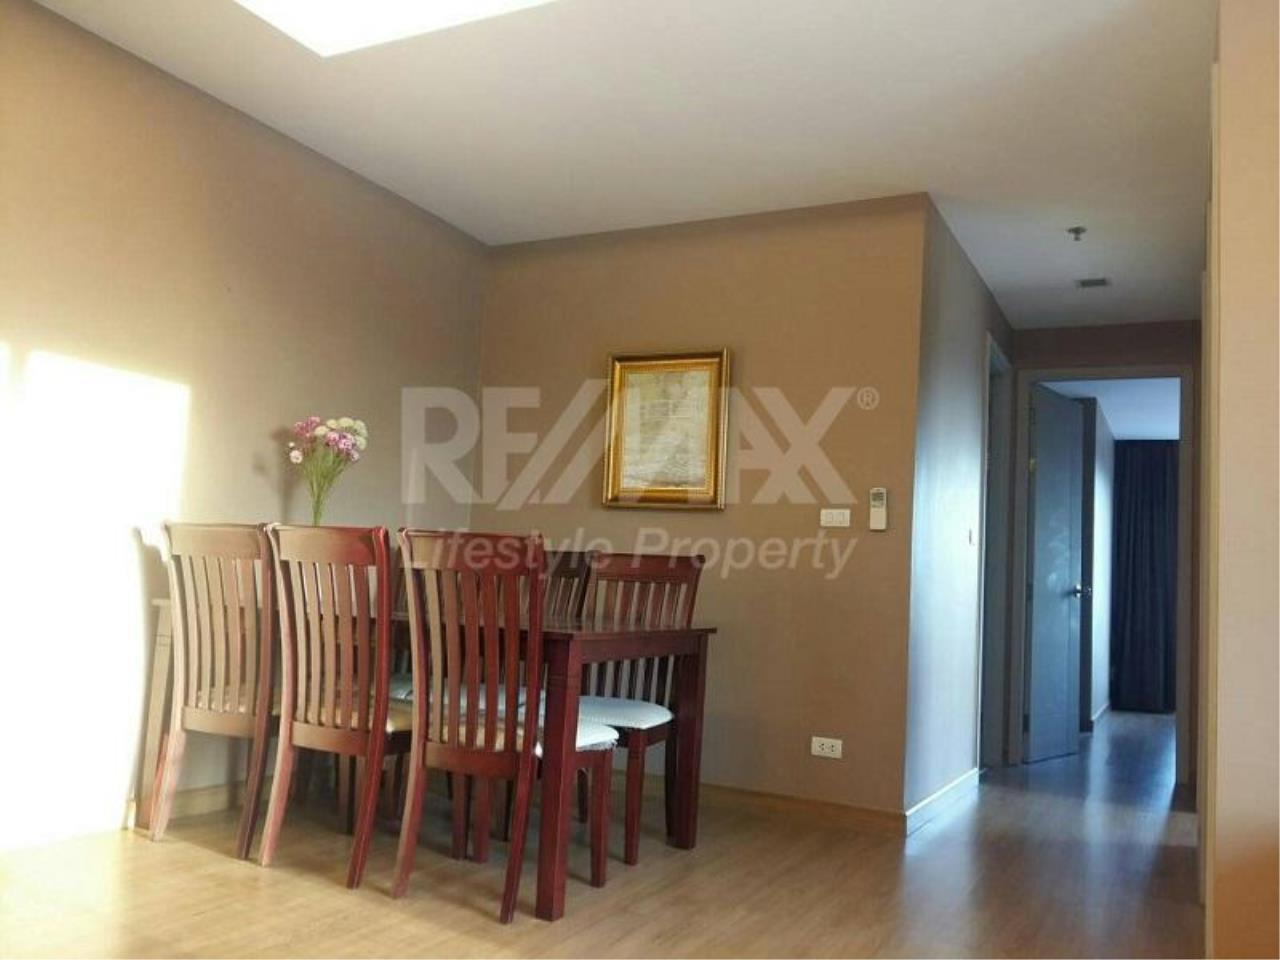 RE/MAX LifeStyle Property Agency's Thru Thonglor 7